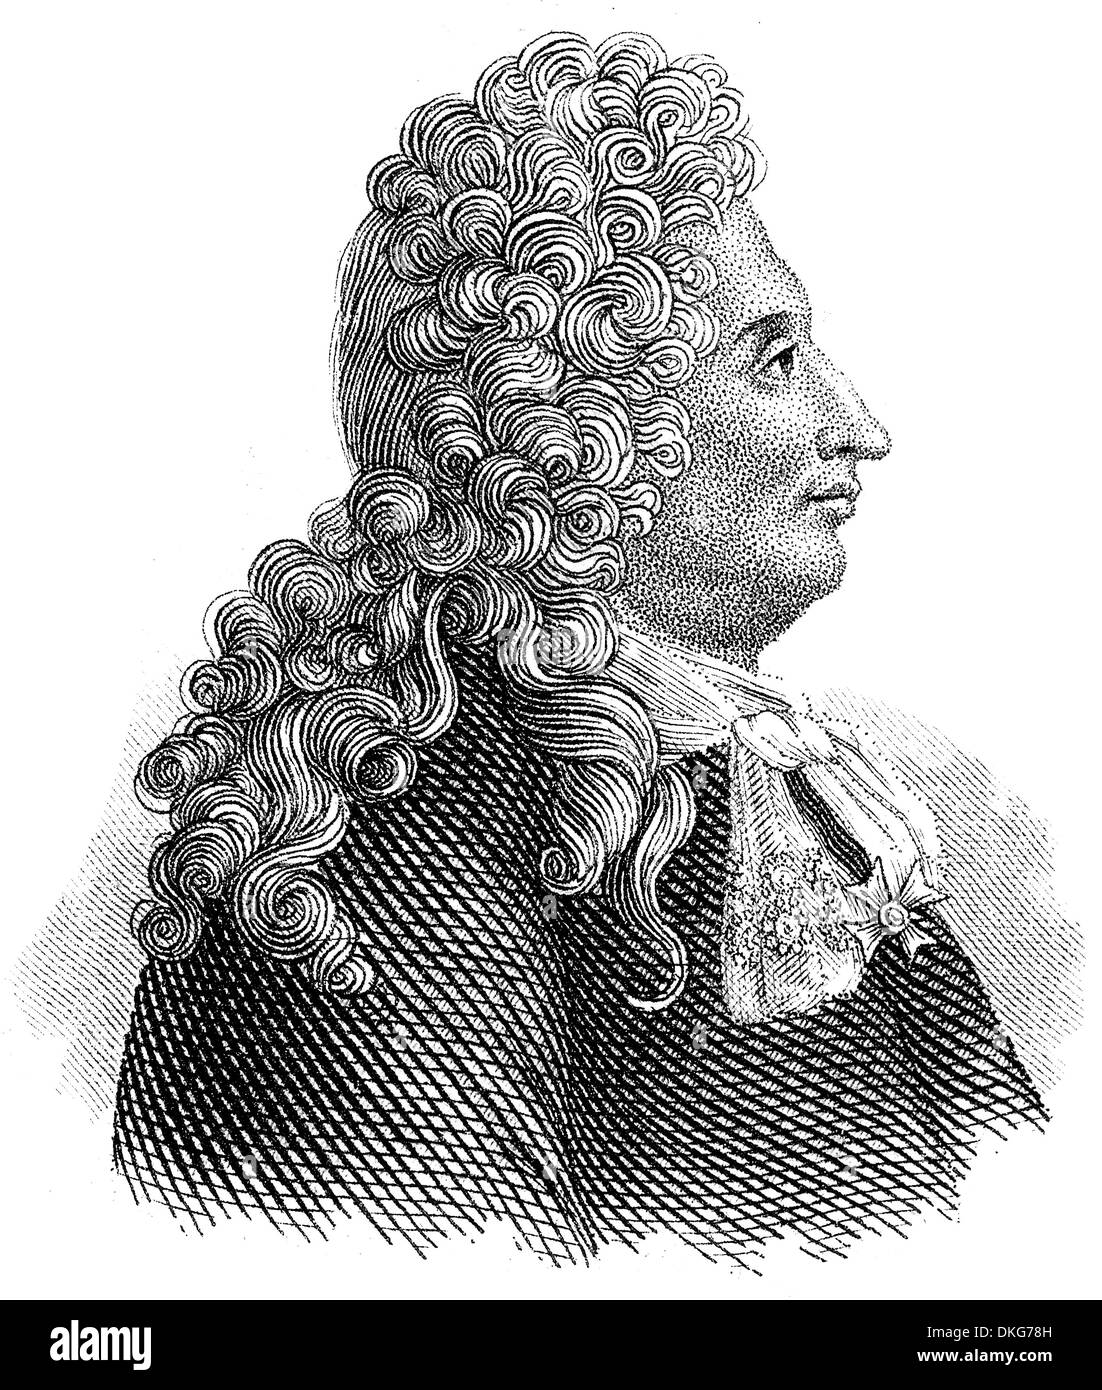 Portait of Jules Hardouin-Mansart, 1646 - 1708, a French architect of Baroque architecture - Stock Image